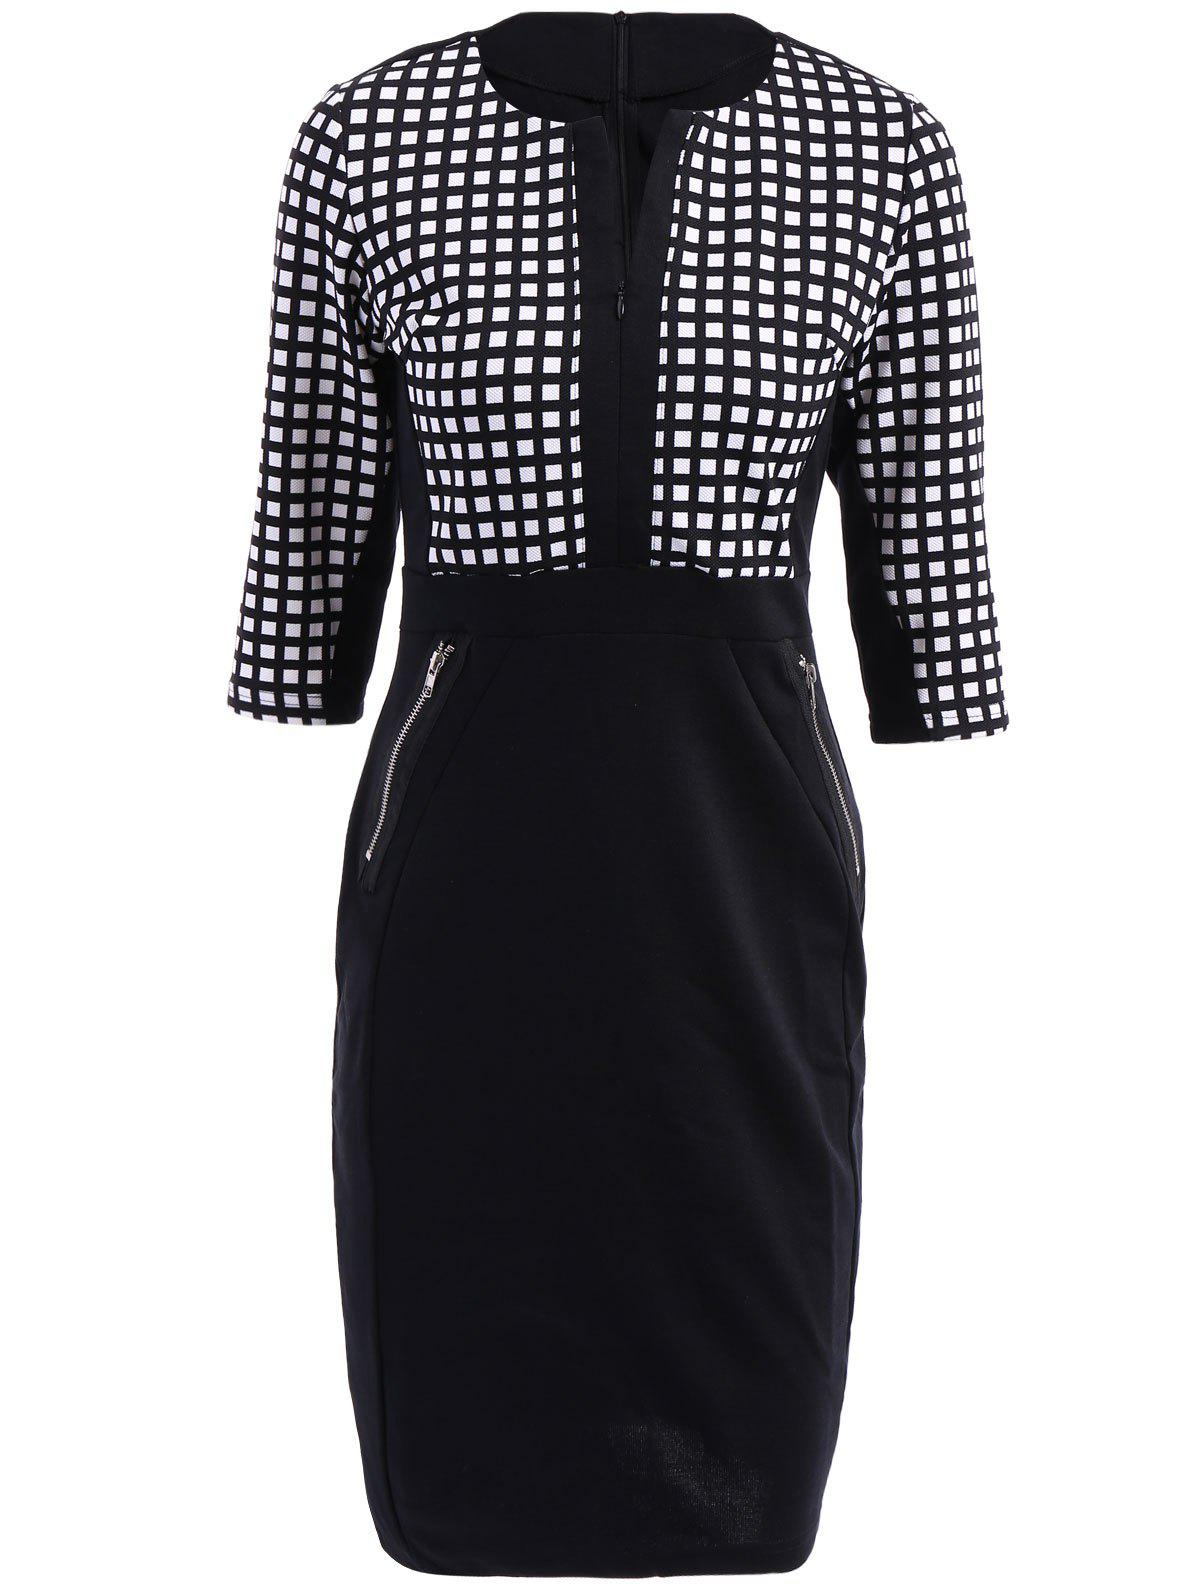 OL Style V-Neck Checked Print 3/4 Sleeve Women's Pencil Dress